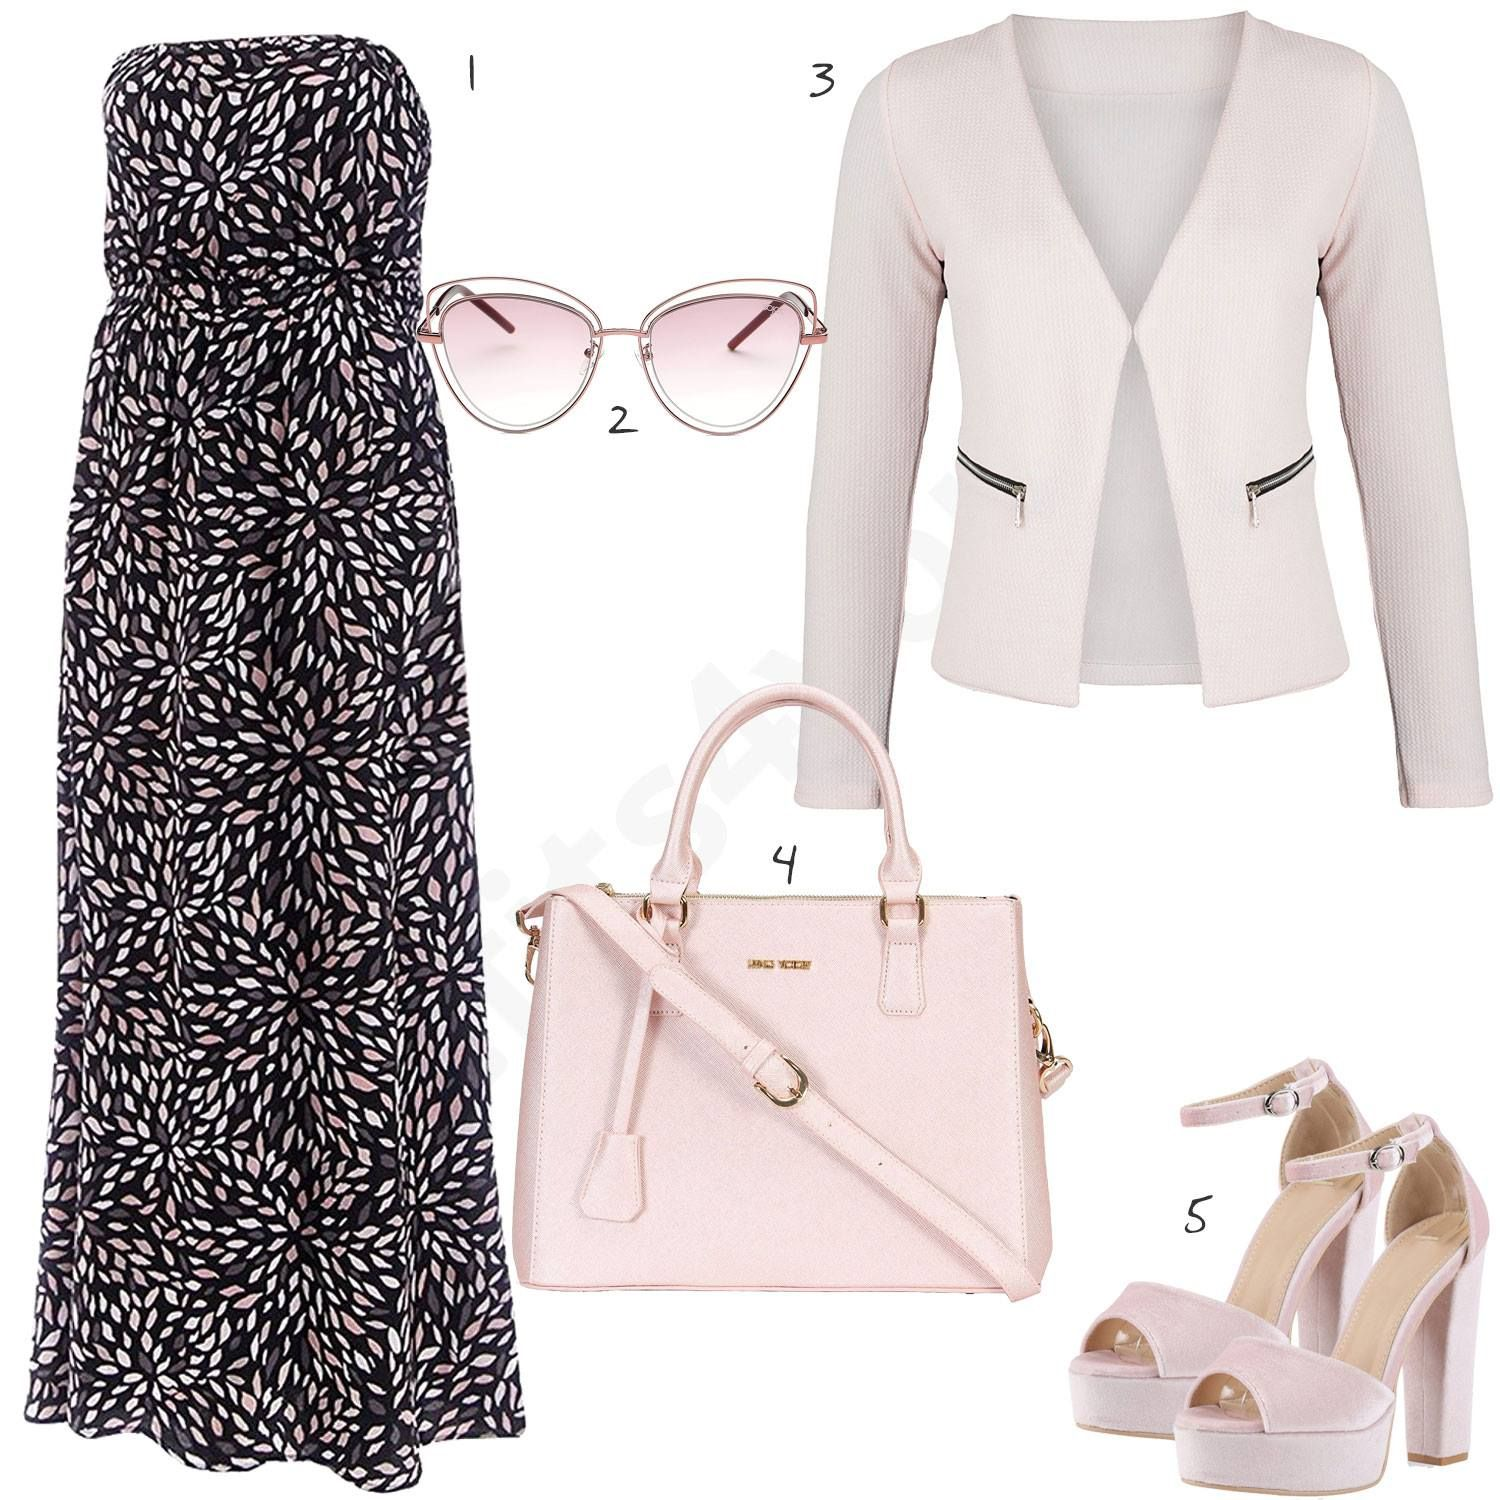 Rosa Weisses Damenoutfit Mit Blazer Und Bluse Outfits4you De Outfits Church Outfits Fashion